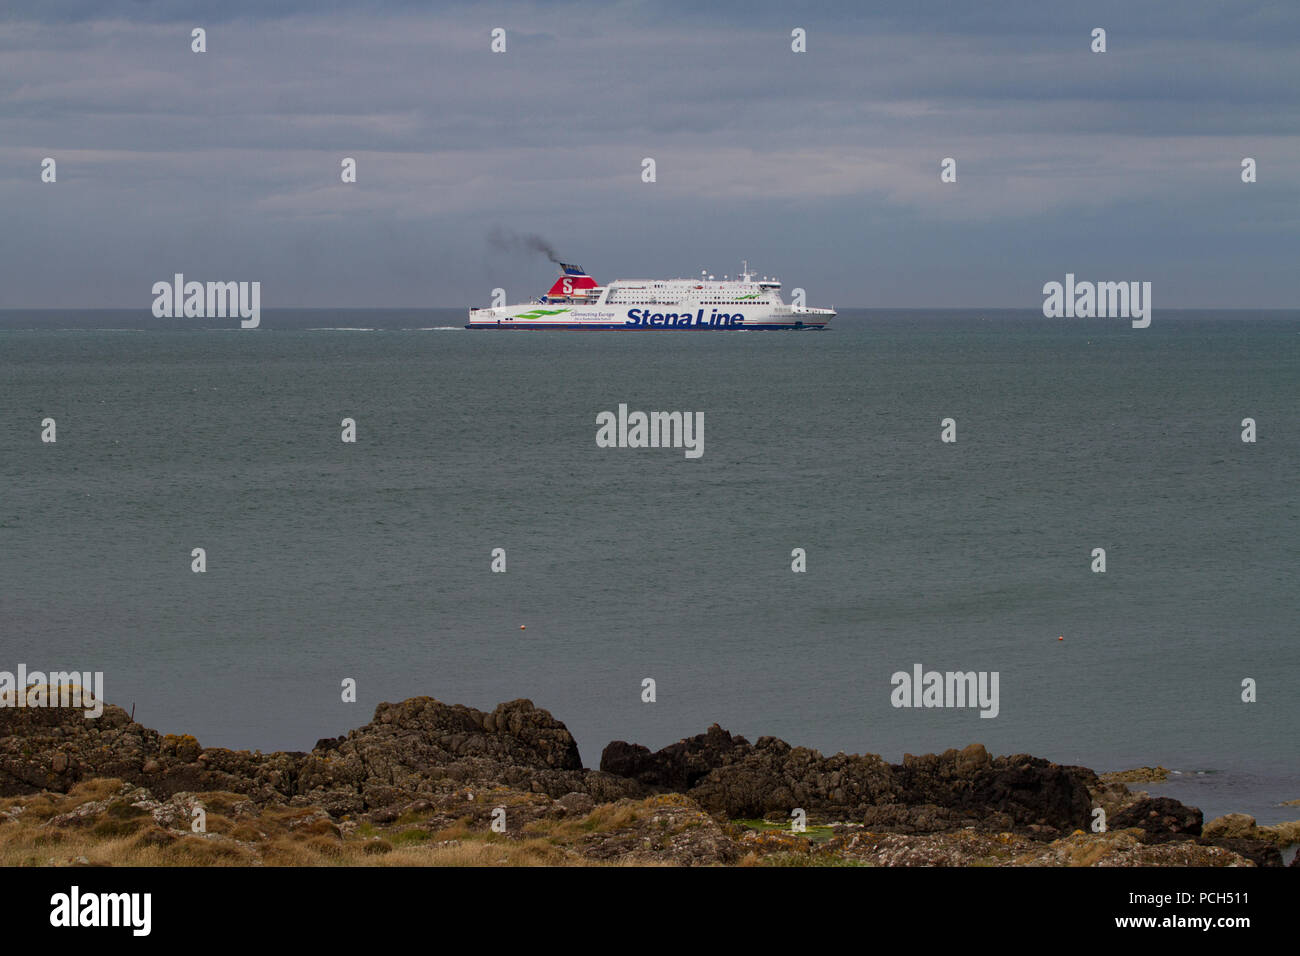 Stena Line ferry in Irish sea near Lock Ryan on way to Cairnryan Ferry Port from Ireland. Scotland - Stock Image